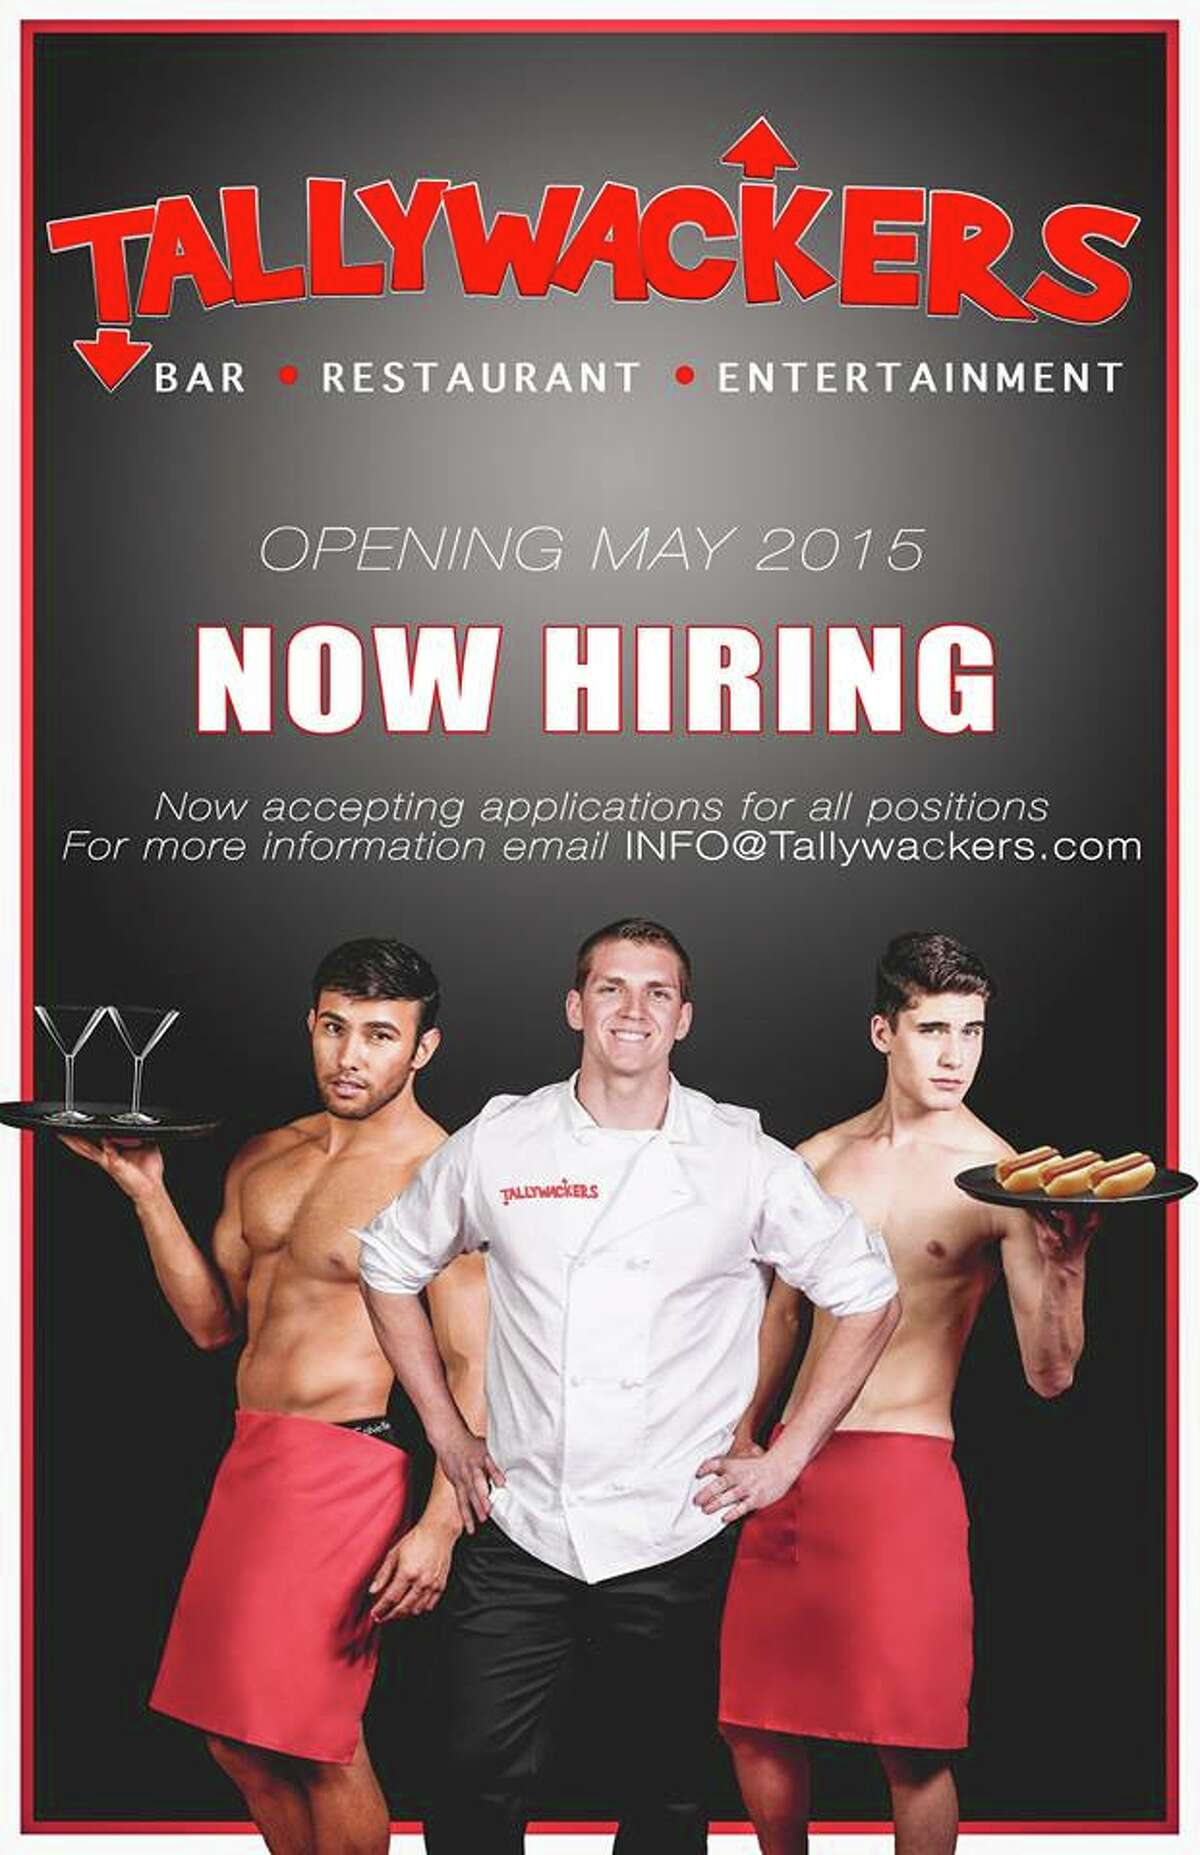 Dallas will soon see the opening of Tallywackers, an eatery featuring scantily-clad men like the ones seen here.